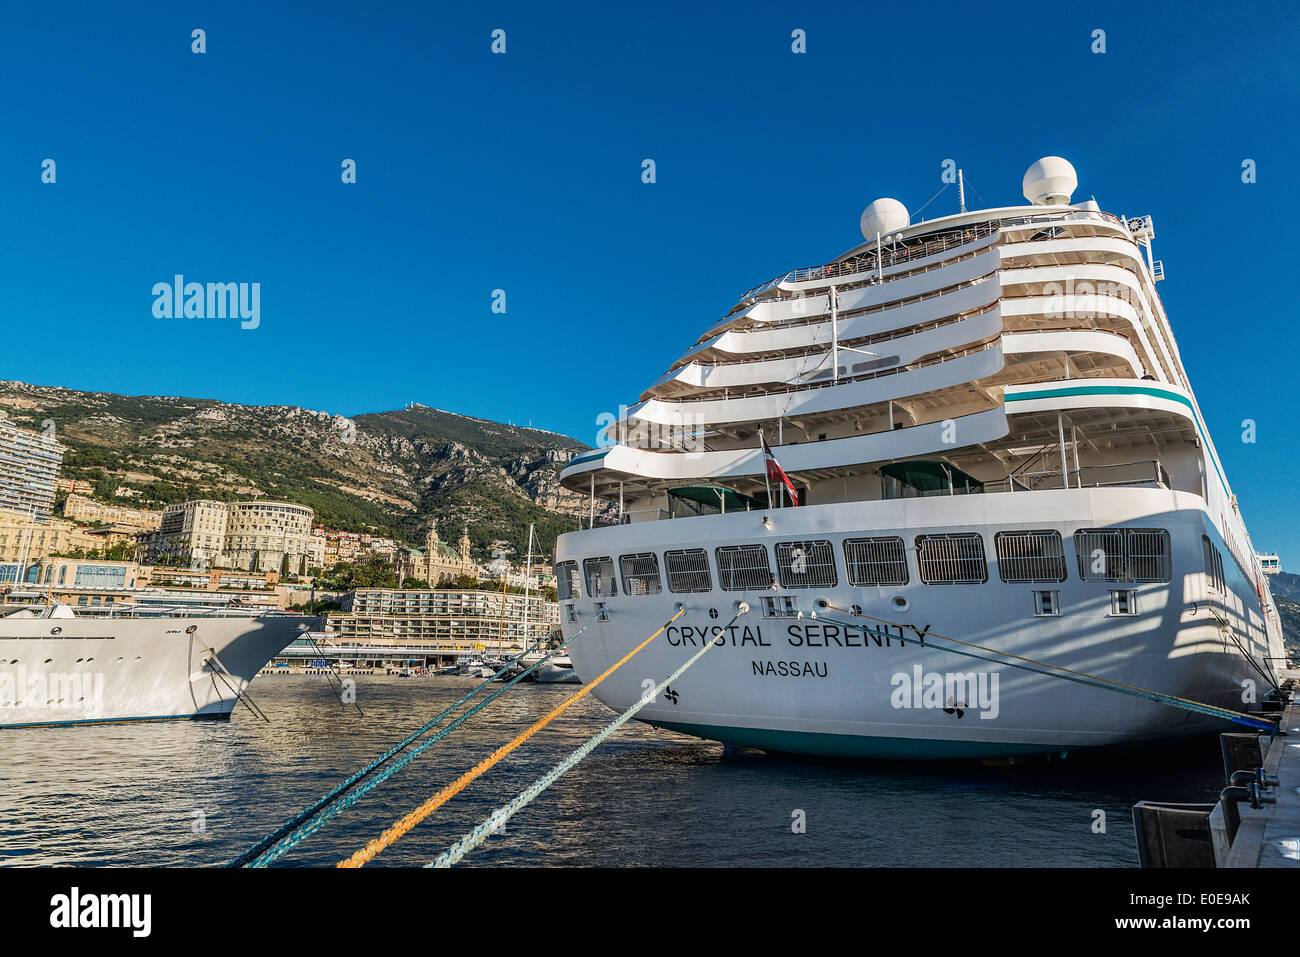 Crystal Serenity Cruise Ship In Port Monte Carlo Monaco Stock - Cruise ships in monaco today